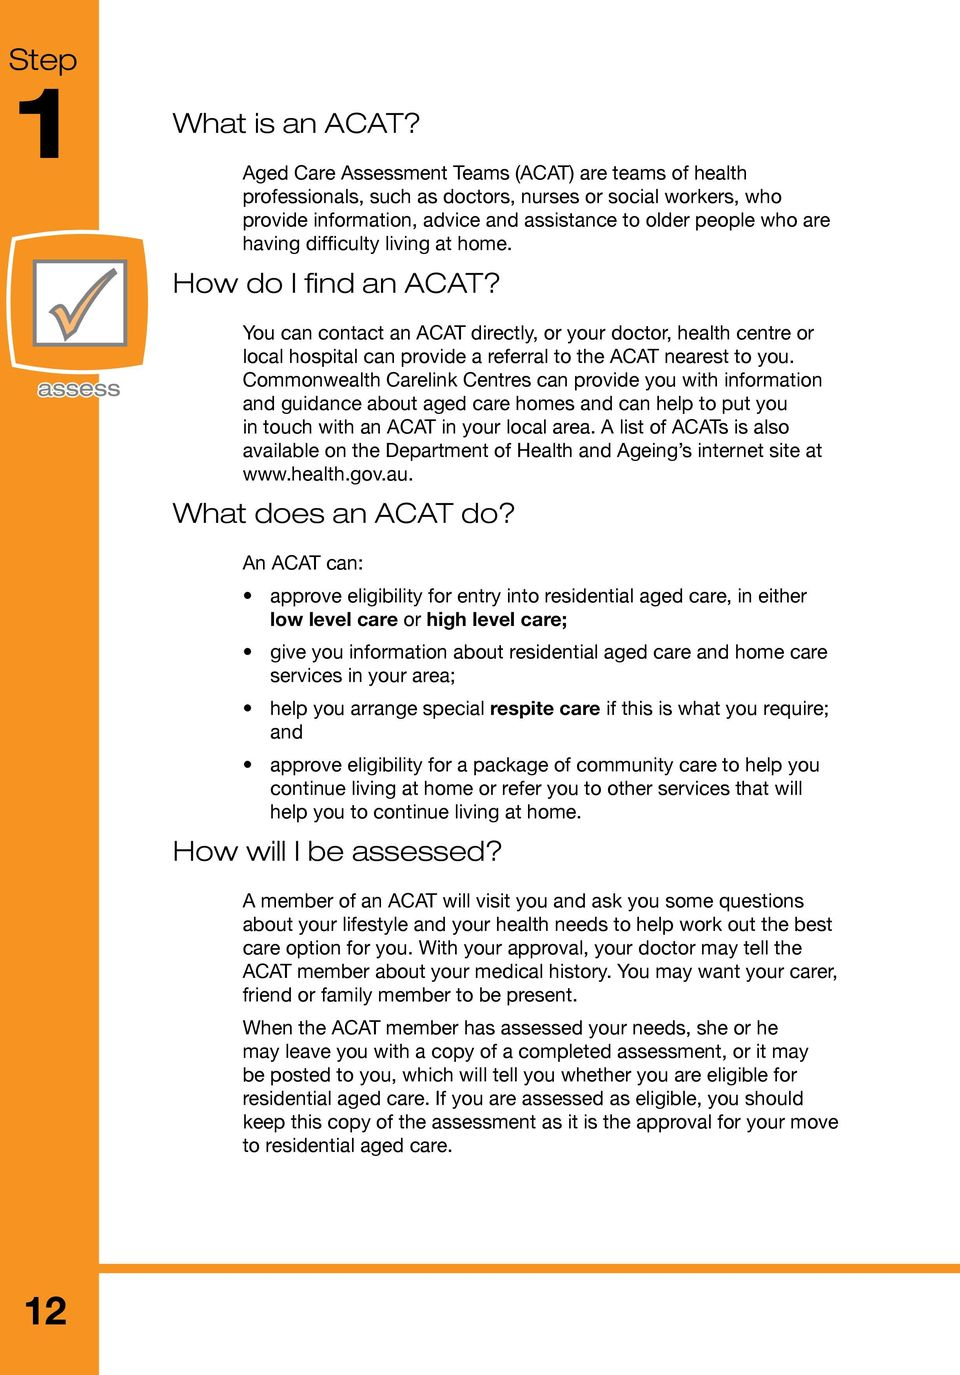 difficulty living at home. How do I find an ACAT? You can contact an ACAT directly, or your doctor, health centre or local hospital can provide a referral to the ACAT nearest to you.